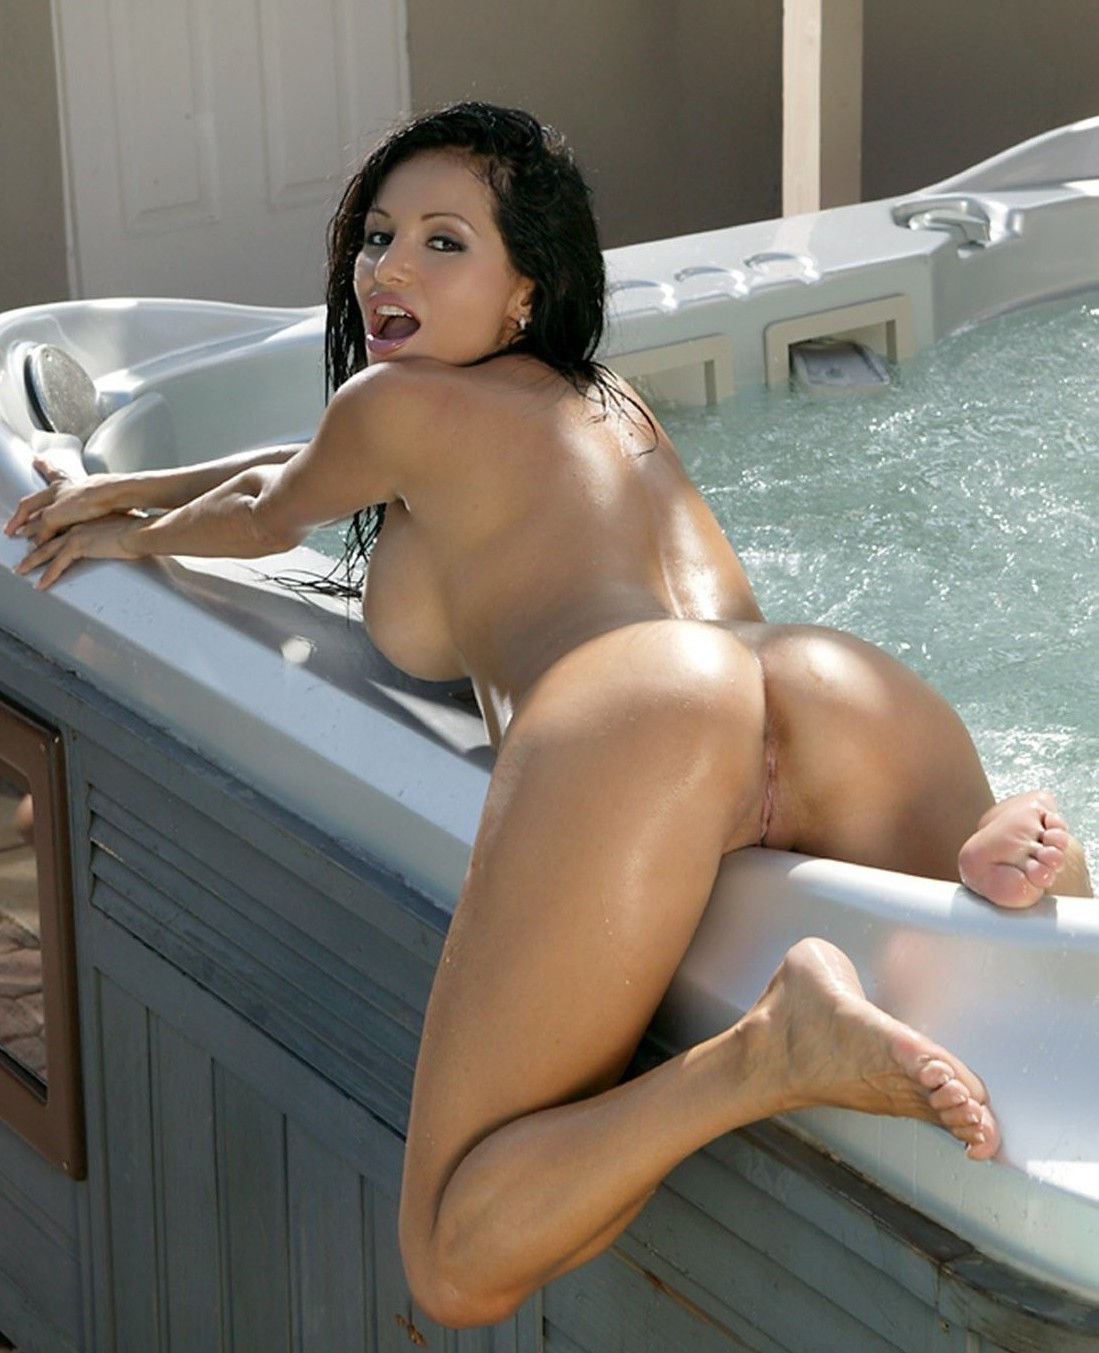 Love to have that in my house…both the chick & the jacuzzi…😉😈